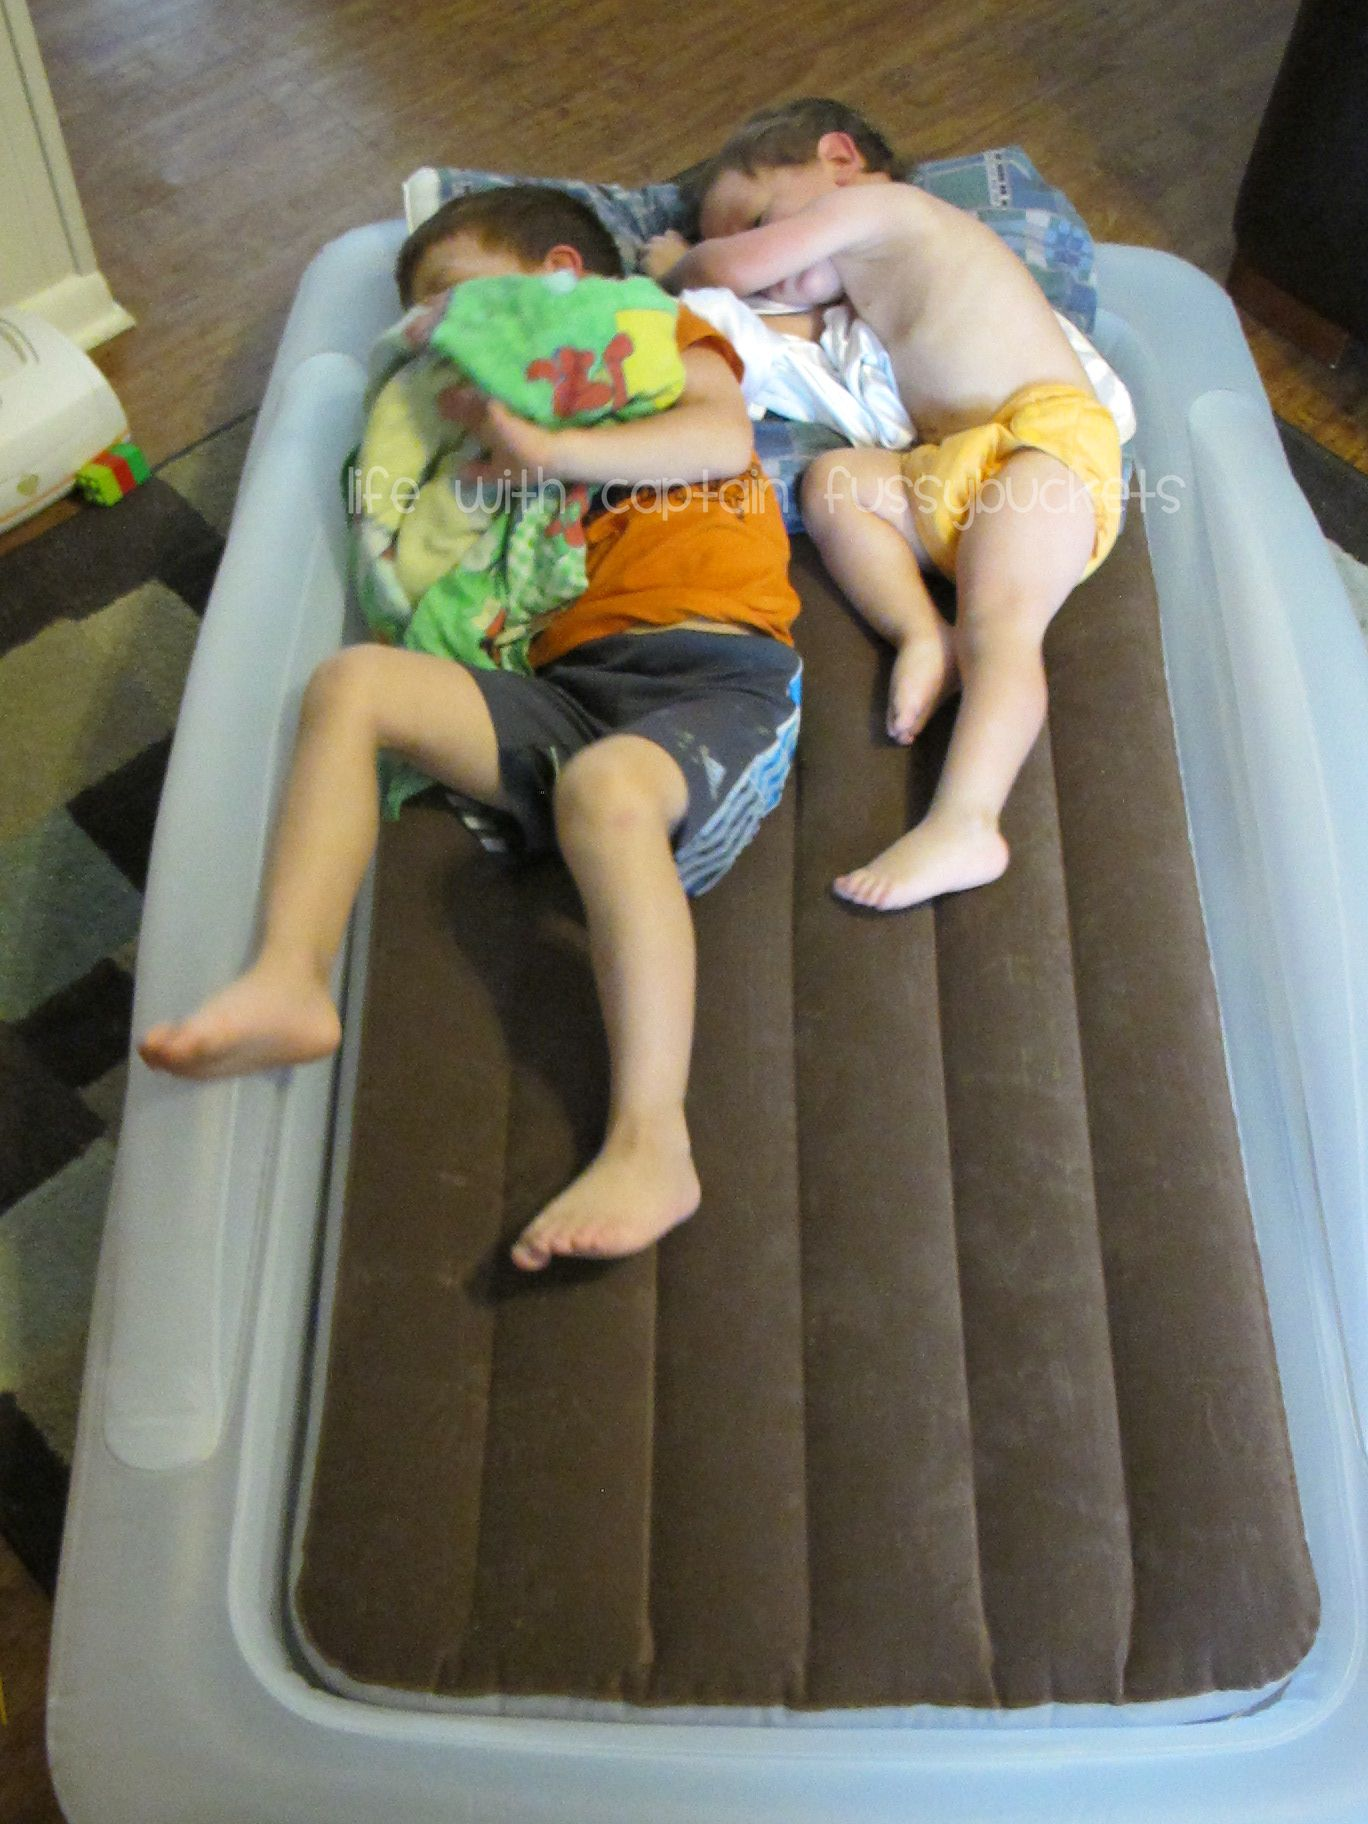 Holiday Traveling is Made Easy with The Shrunks Toddler Travel Bed!